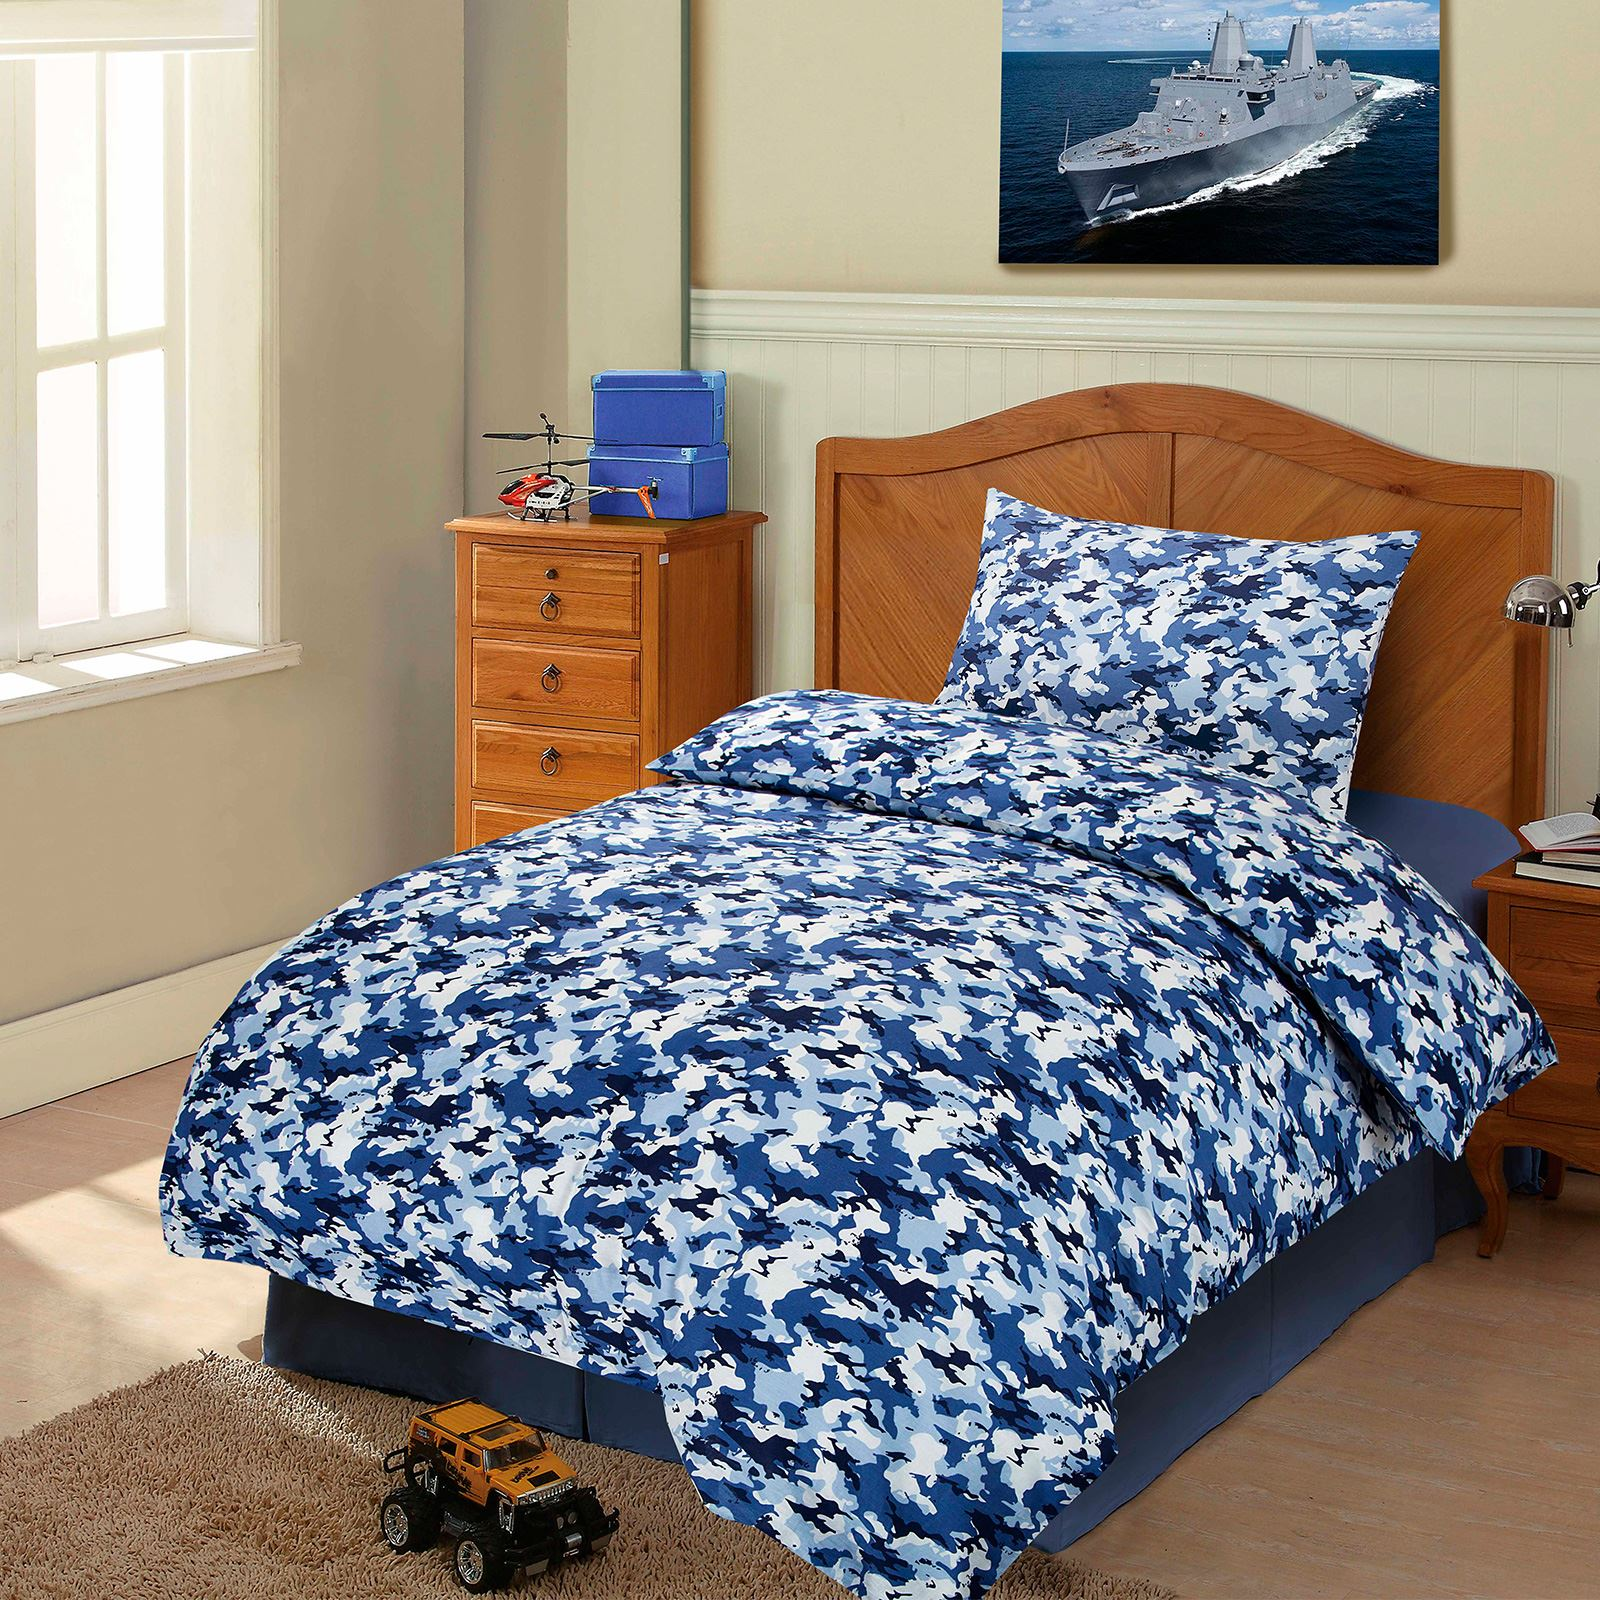 Quilts & Coverlets. Your bed is the largest piece of furniture in the bedroom. Our Assembled In The USA · High-Value Bedding · Quality Guaranteed11,+ followers on Twitter.